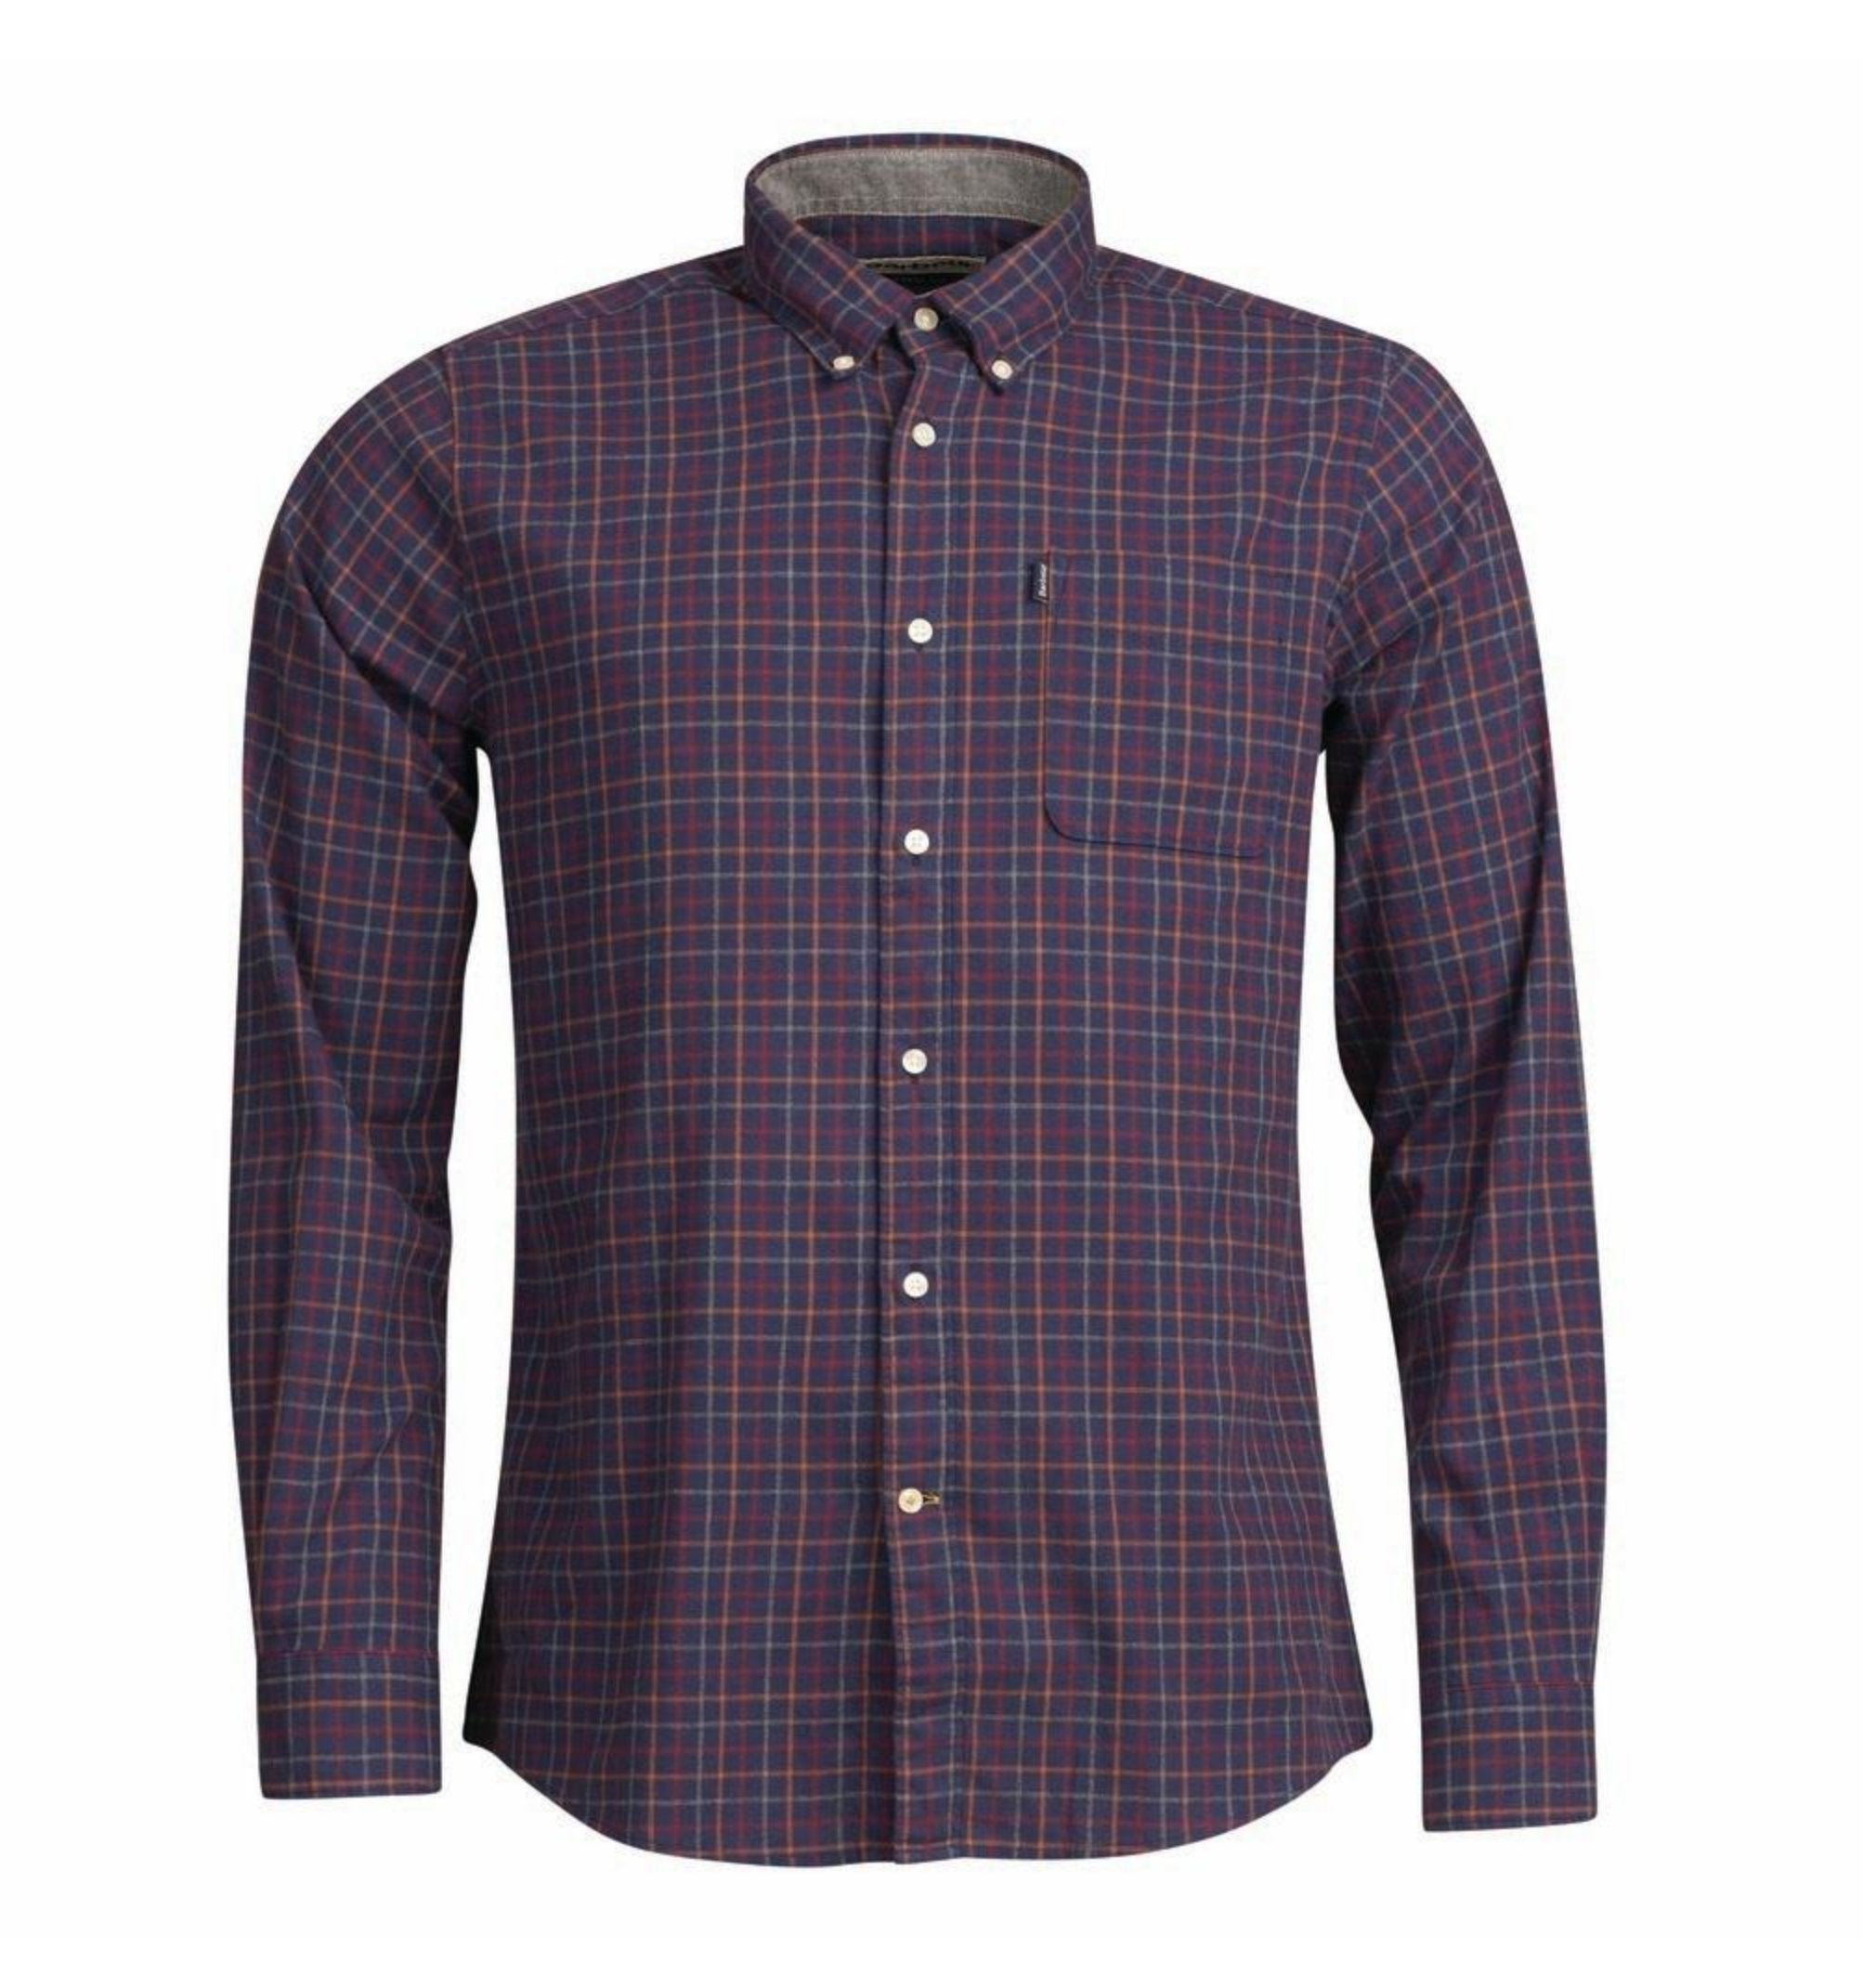 Barbour, Endsleigh Tattersall Tailored Shirt, Navy